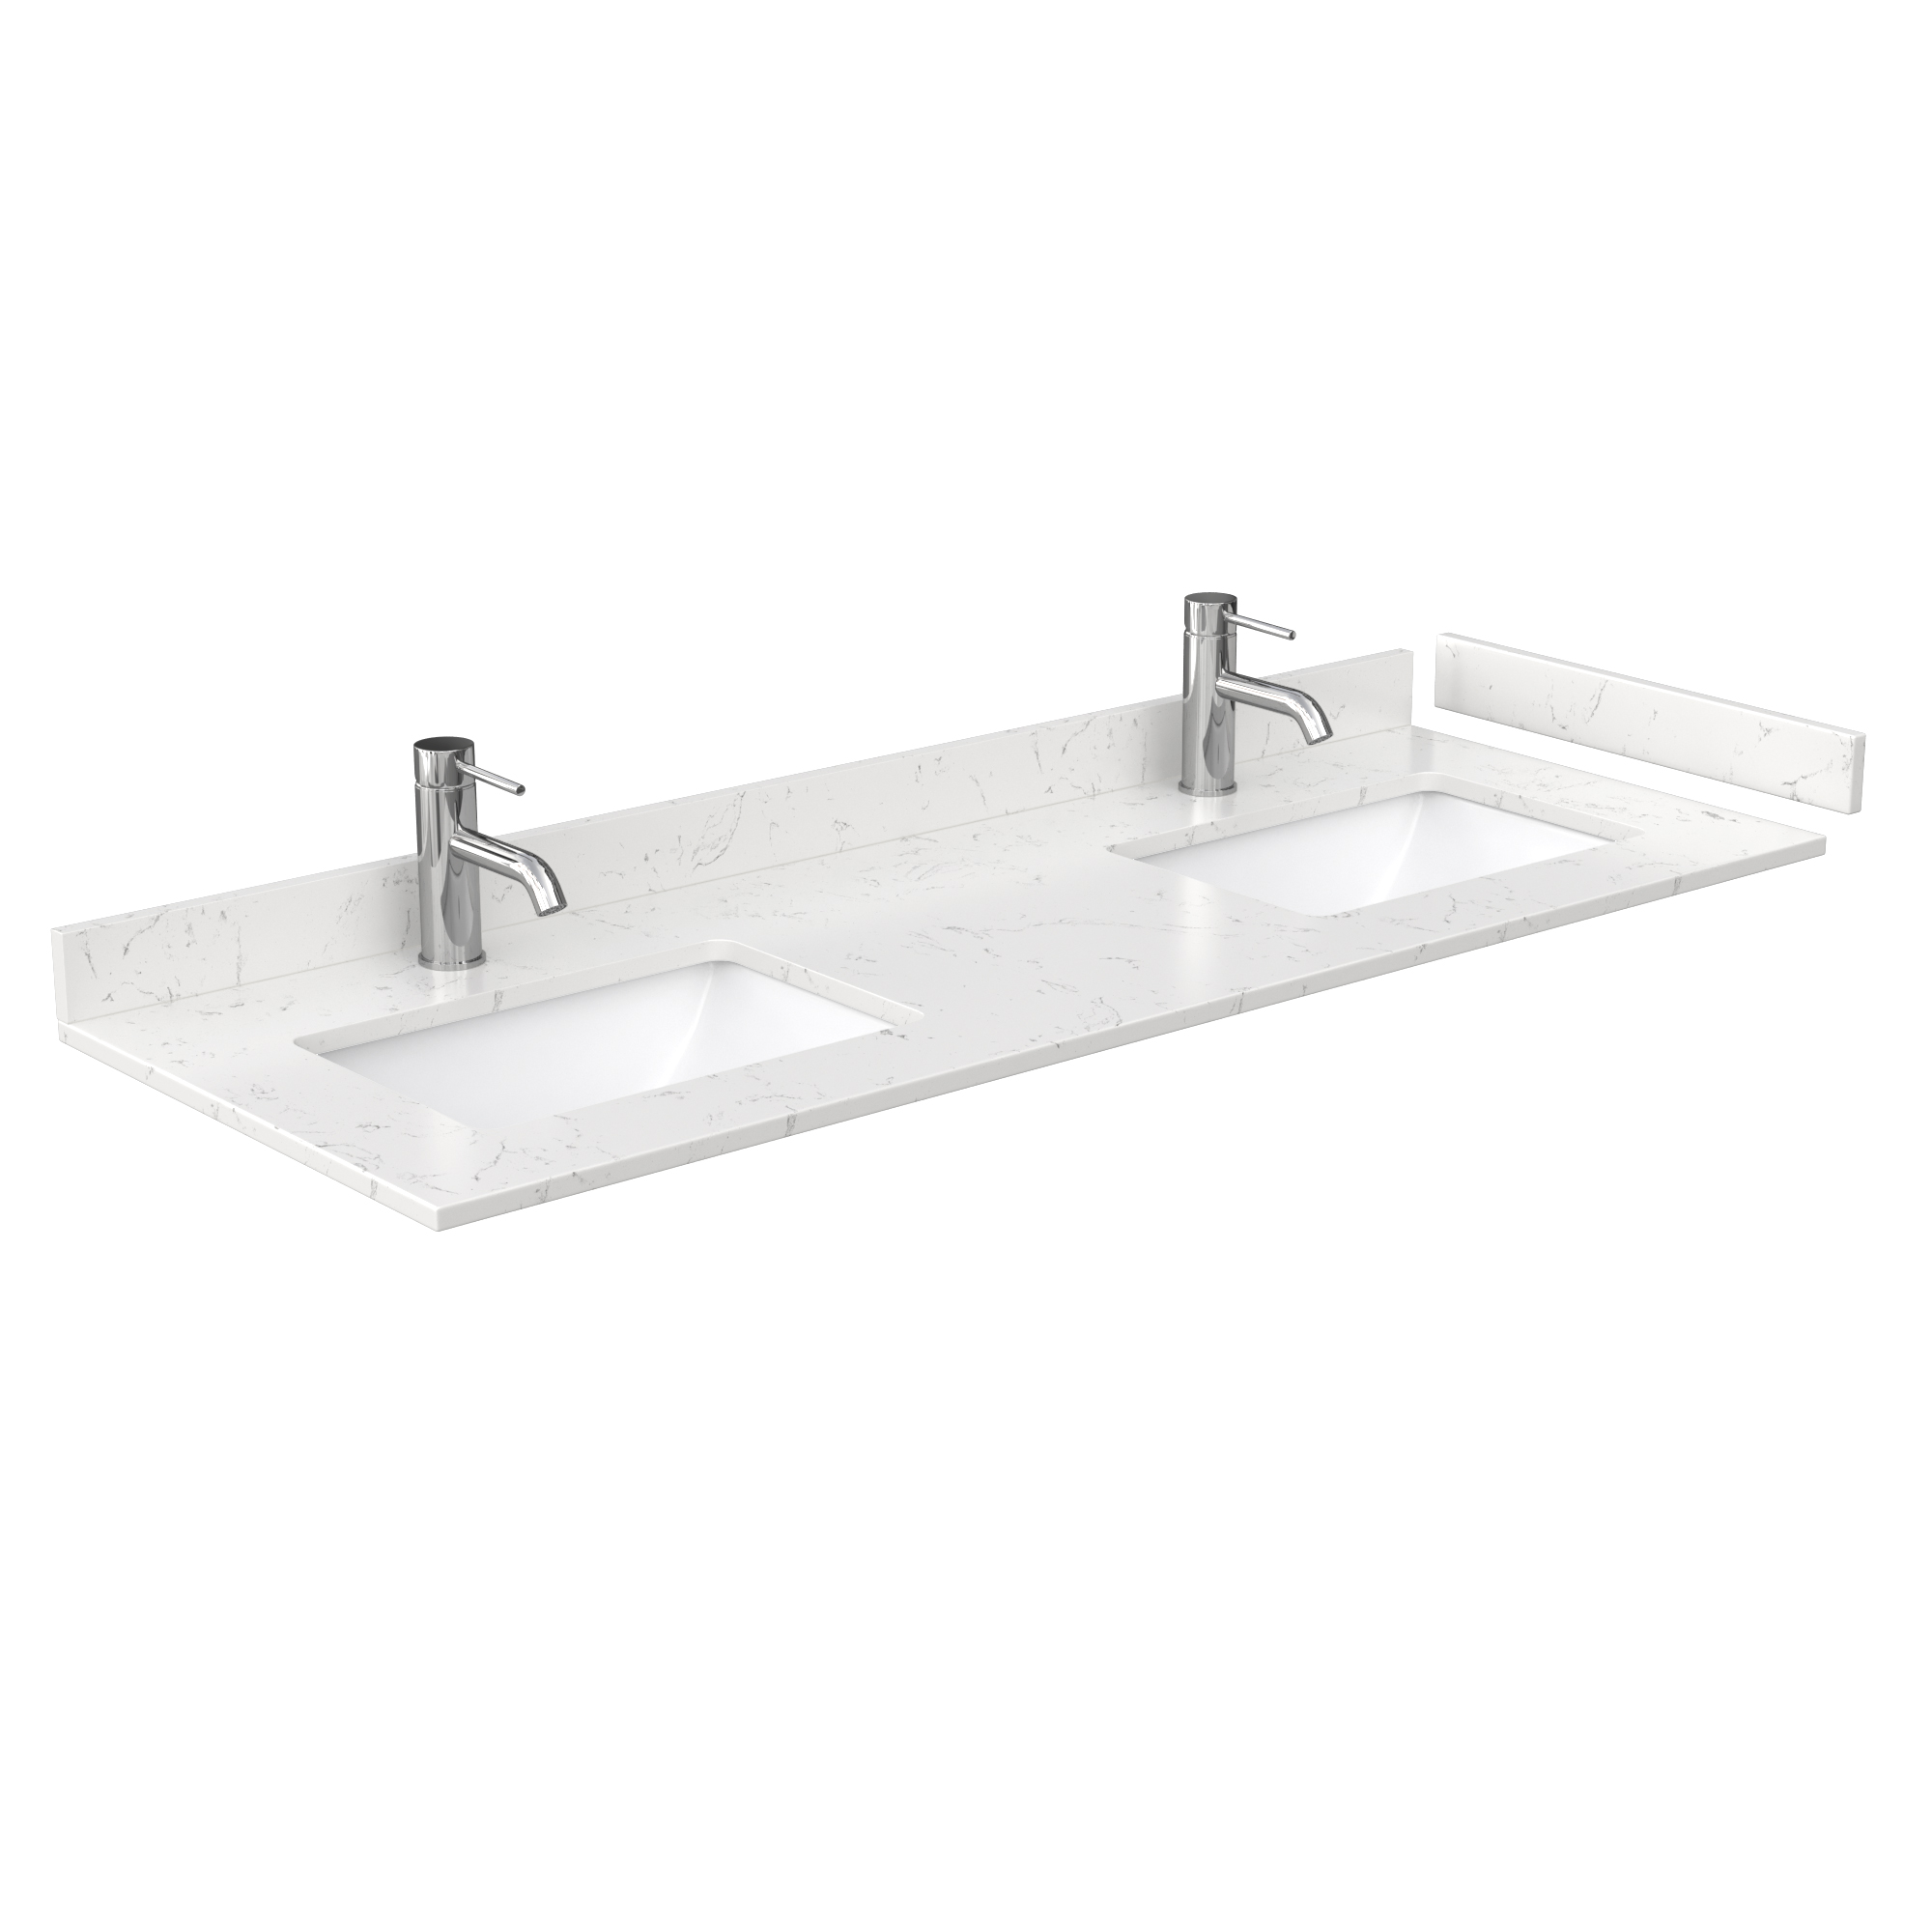 60 Double Countertop Light Vein Carrara Cultured Marble With Undermount Square Sinks Includes Backsplash And Sidesplash Free Shipping Modern Bathroom